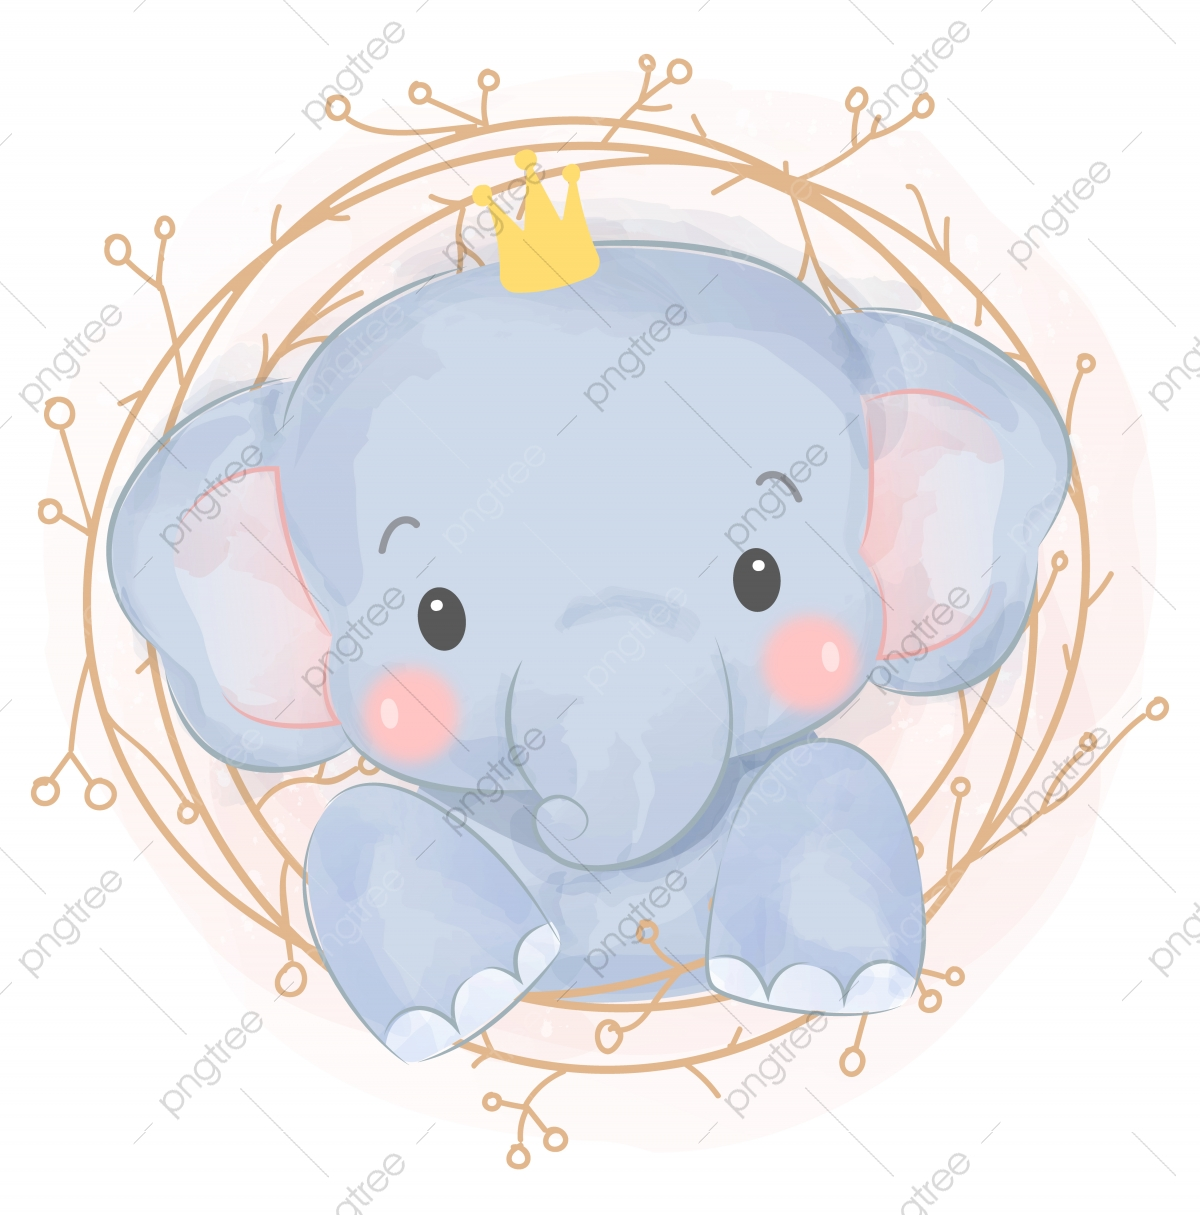 Elephant Vector Png Images Elephants Baby Elephant Watercolor Elephant Vectors In Ai Eps Format Free Download On Pngtree Elephant poster paper baby shower, small elephant baby, gray elephant illustration transparent background png clipart. https pngtree com freepng cute baby elephant illustration 5320745 html